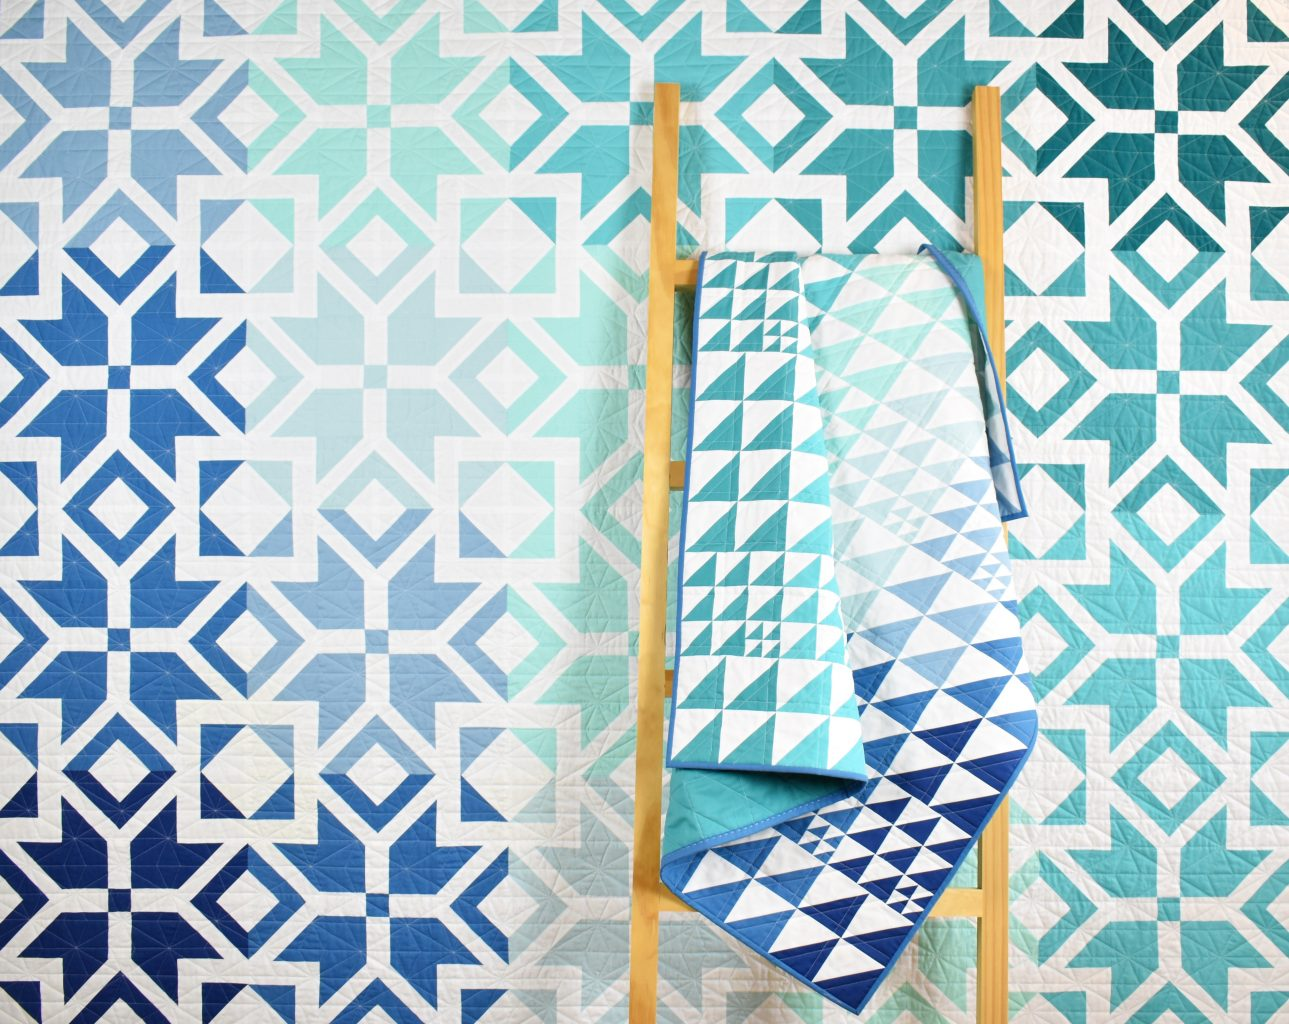 Nordic Star and Wonderie Ombre quilts in blue and teal